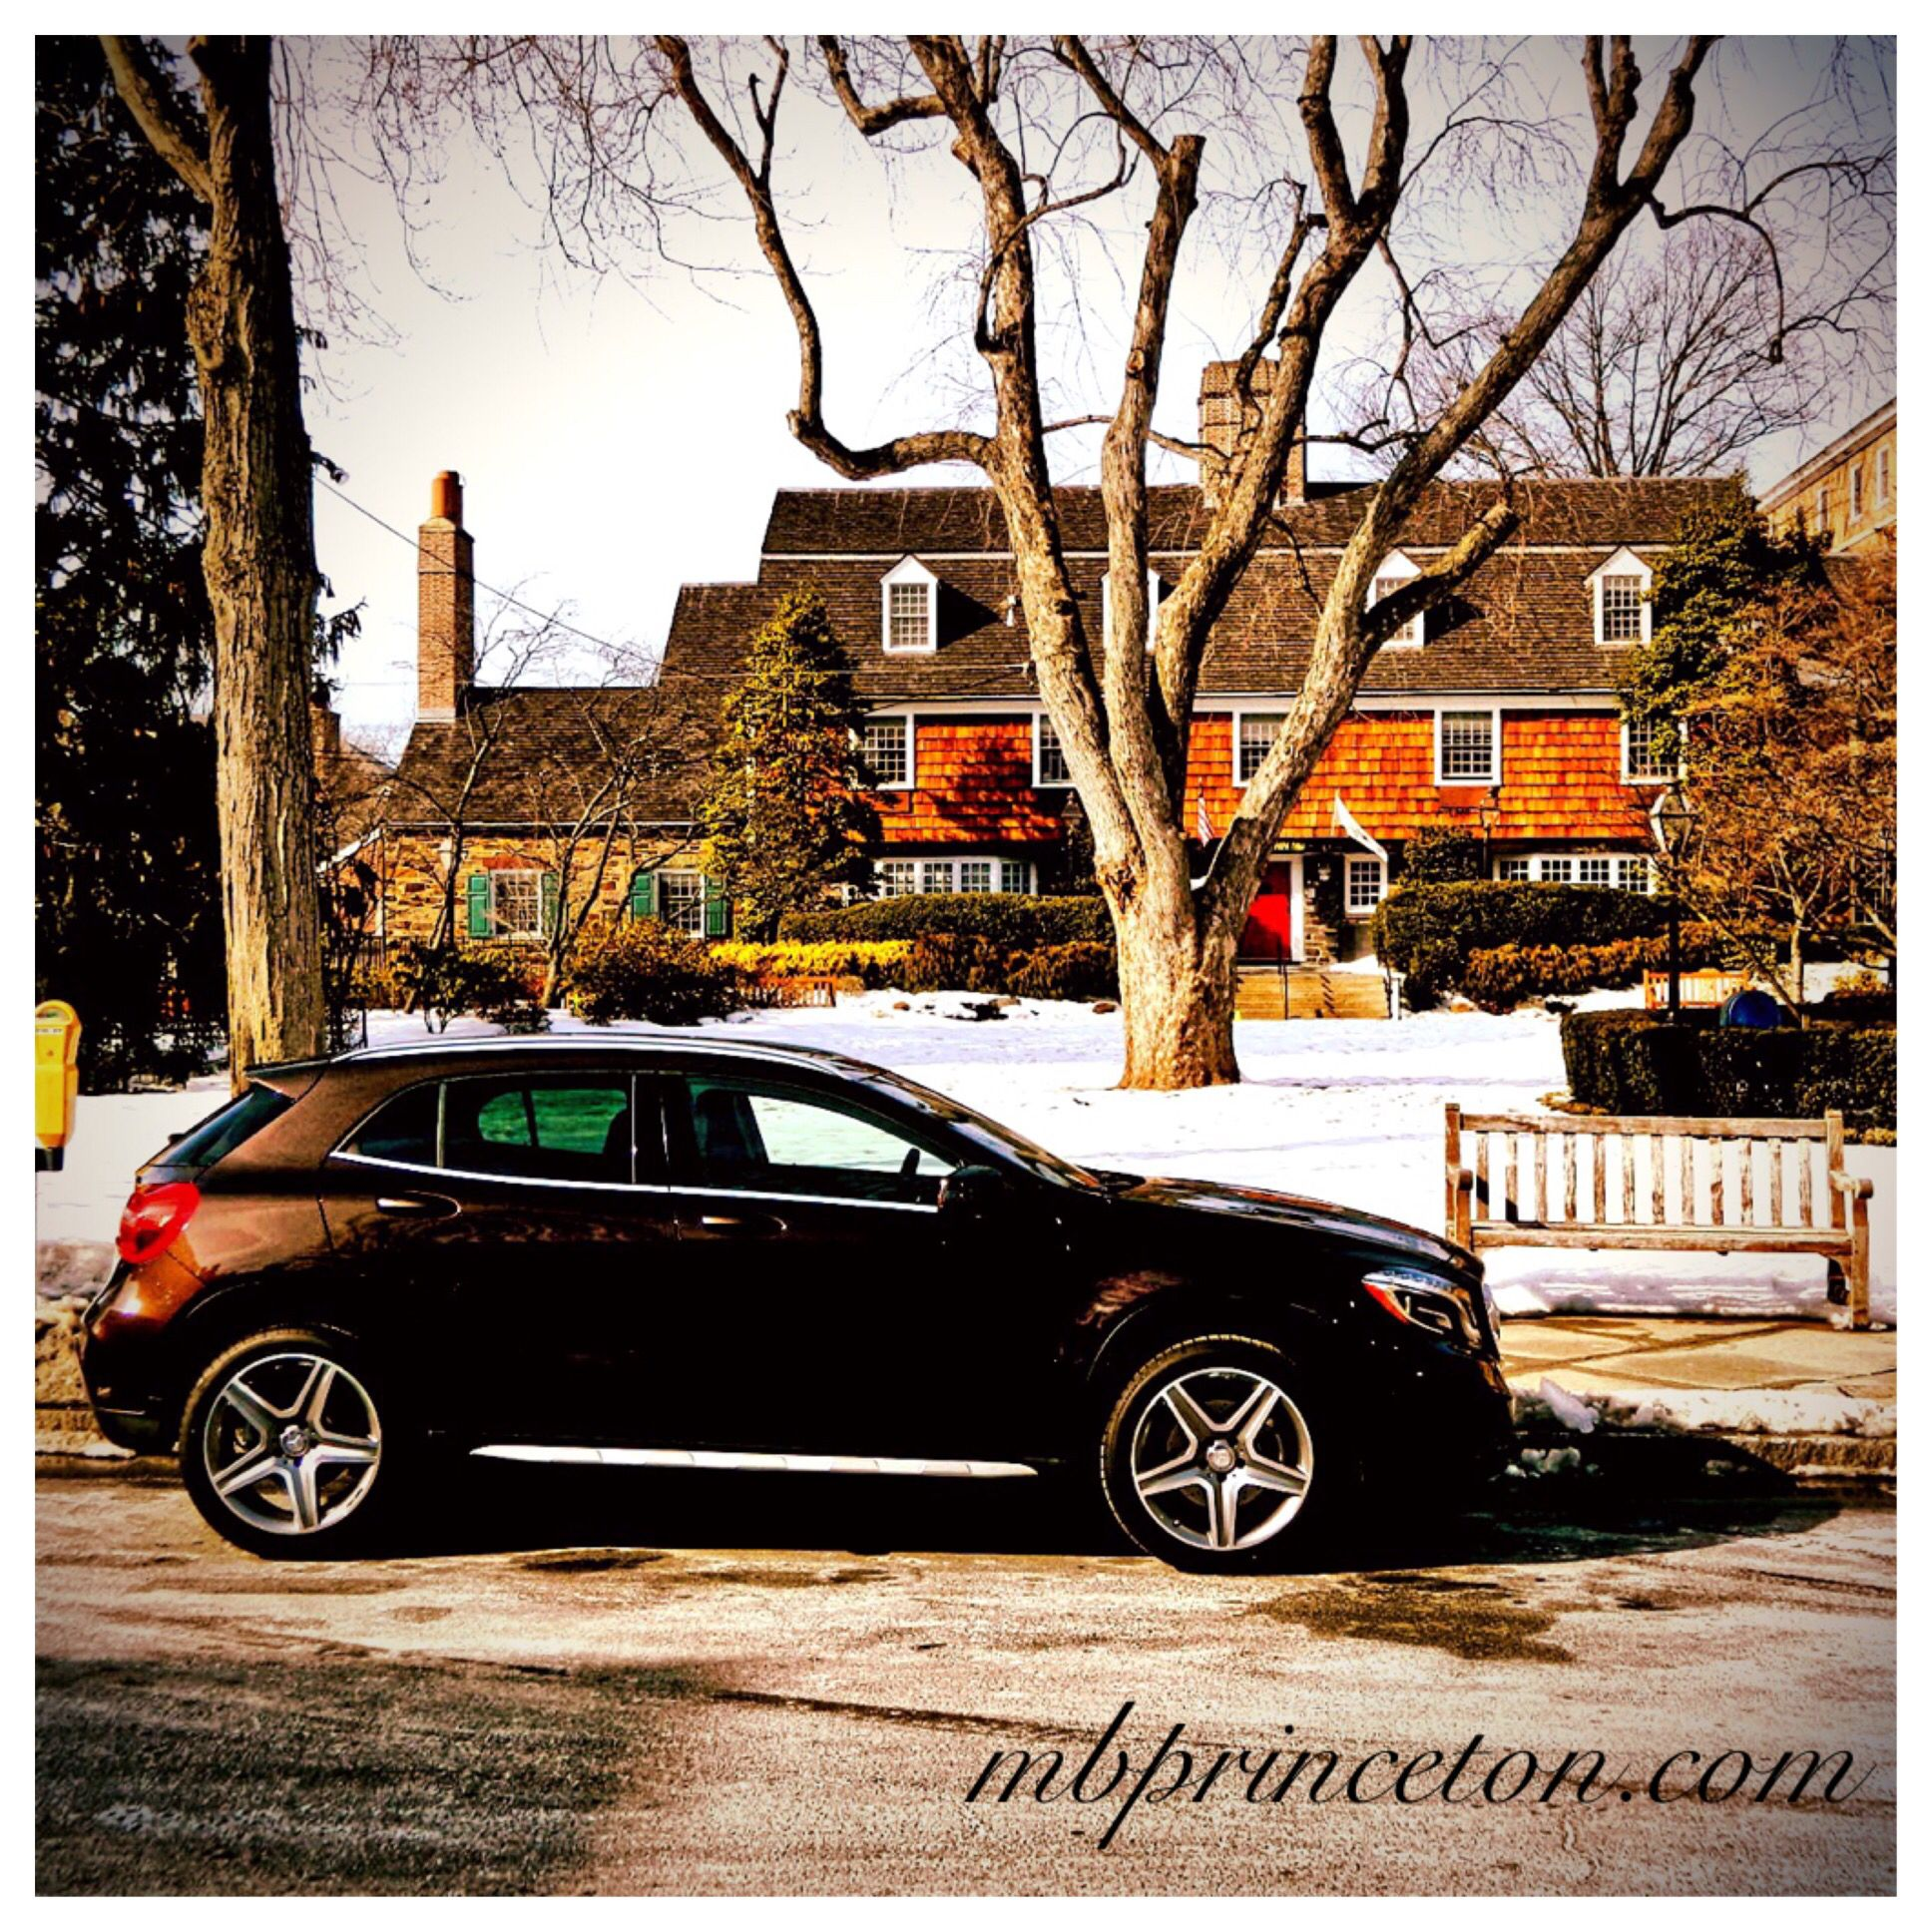 2015 Mercedes-Benz GLA250 in front of the Nassau Inn at ...